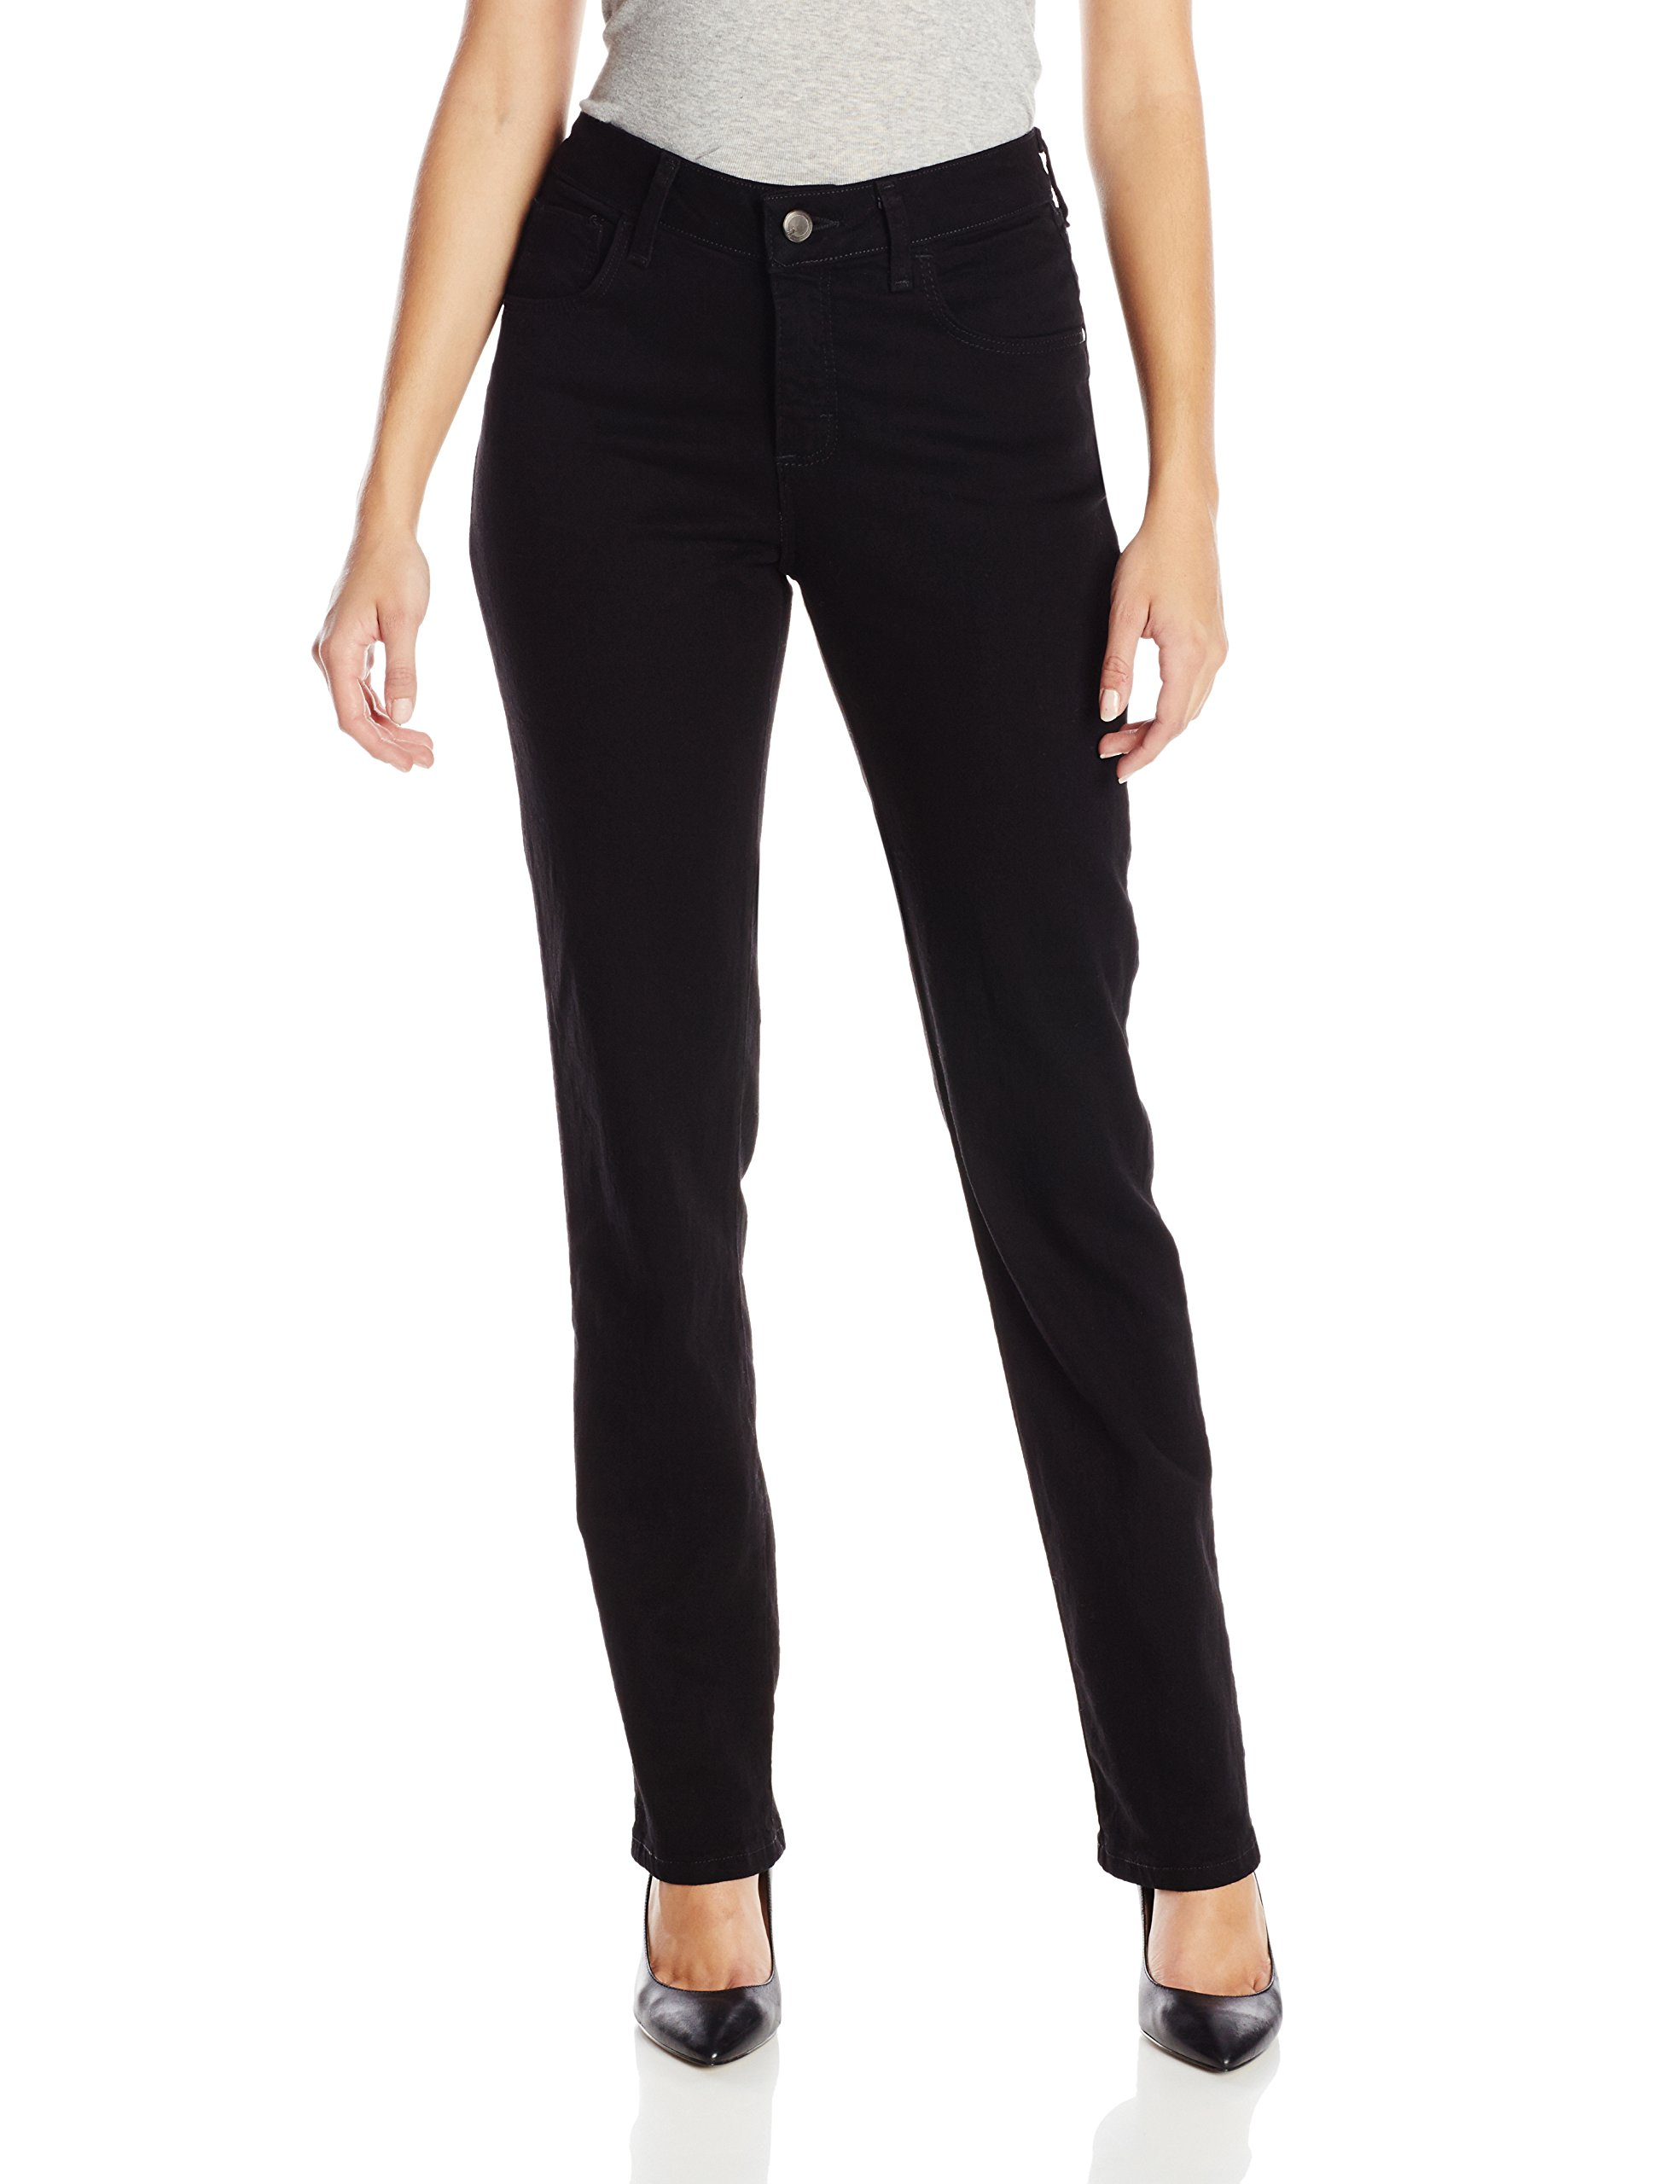 LEE Women's Instantly Slims Classic Relaxed Fit Monroe Straight Leg Jean, Black, 14